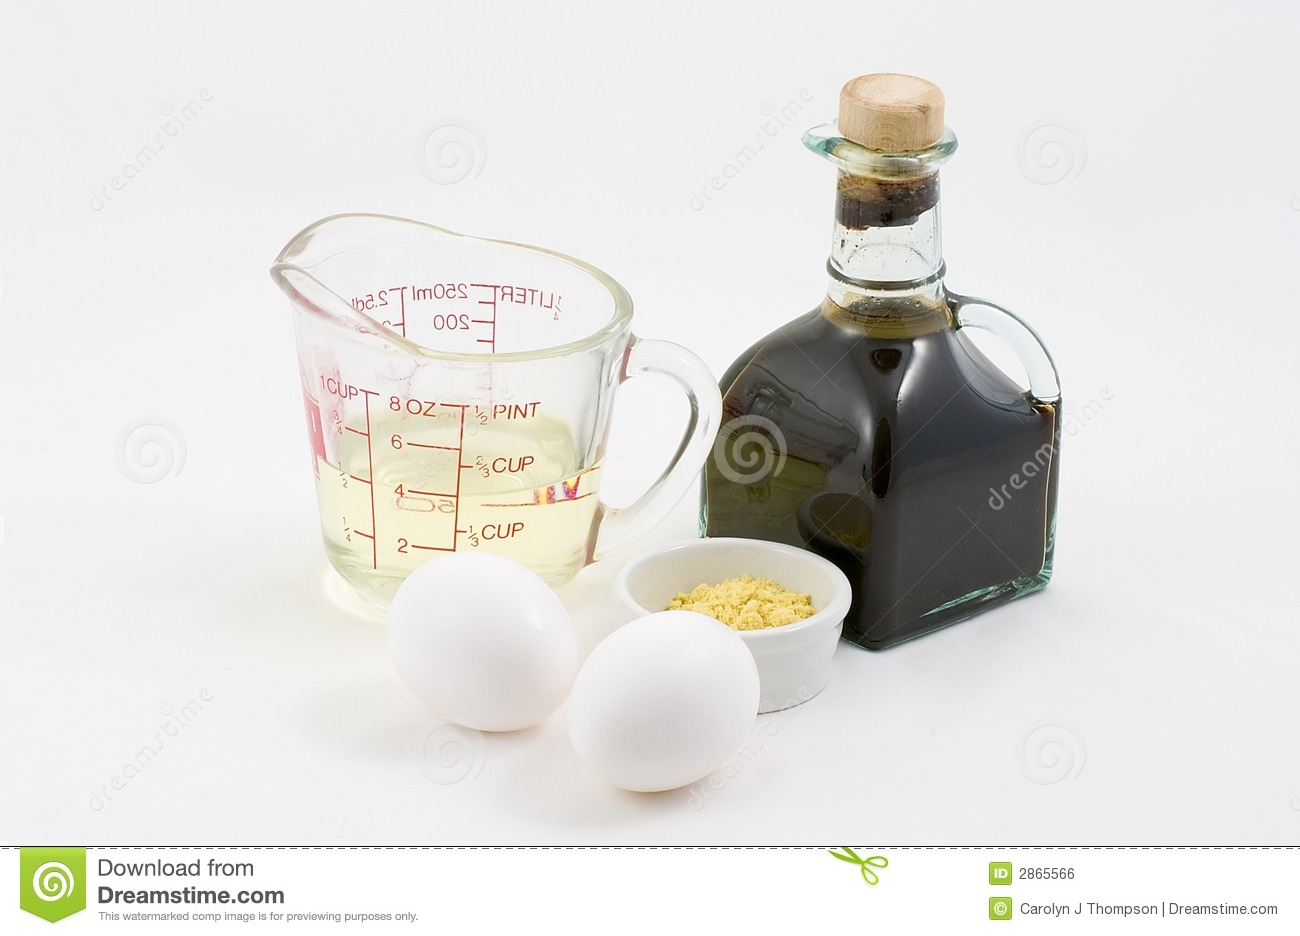 how to make mayonnaise without vinegar